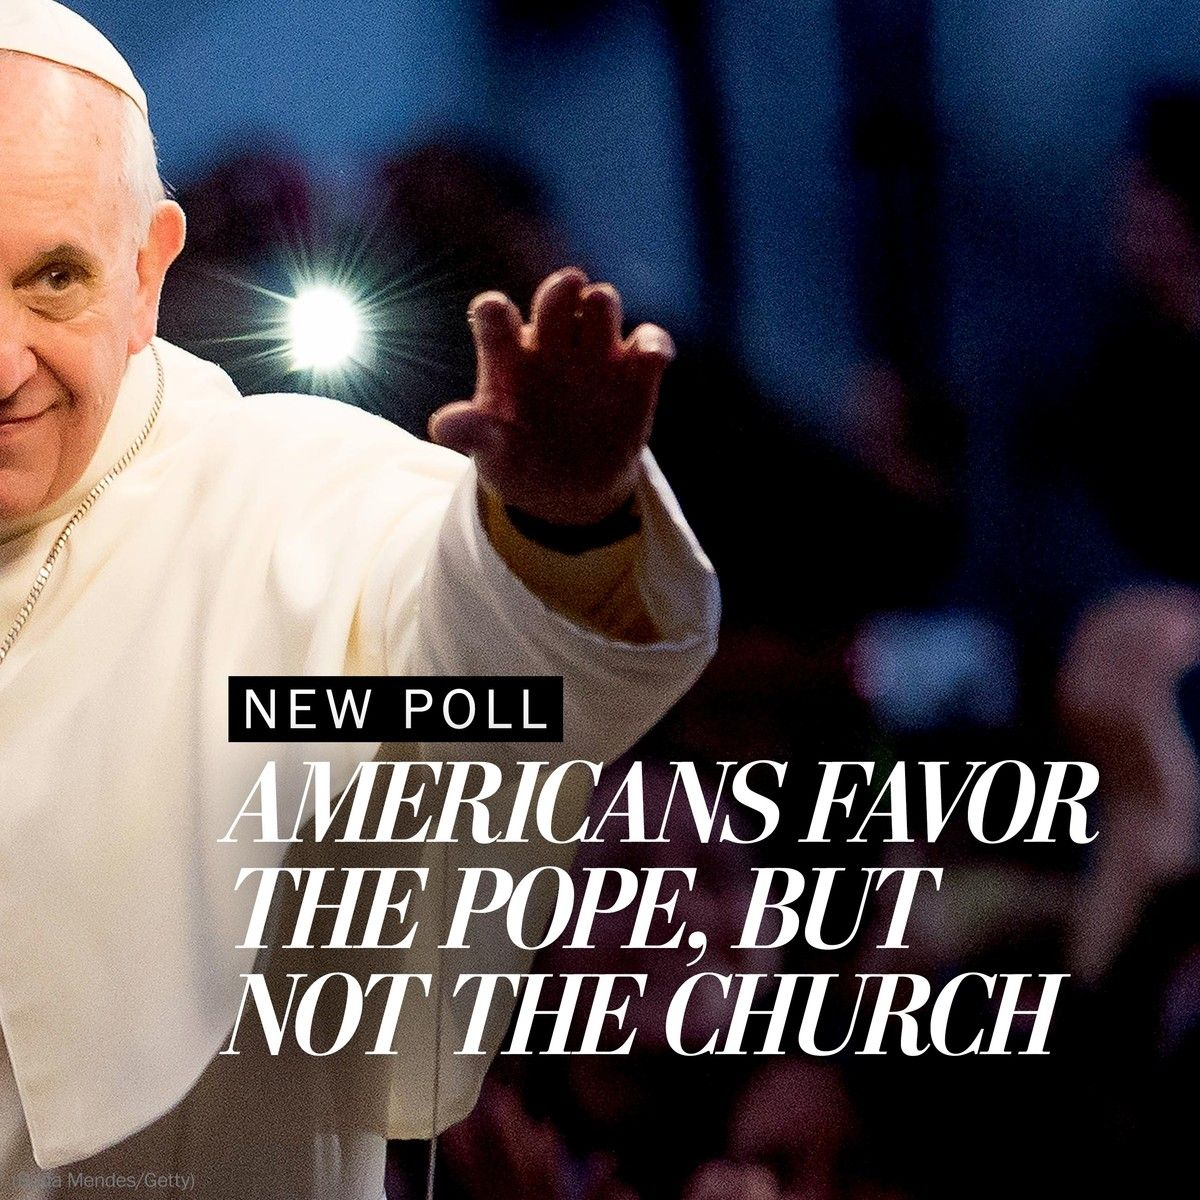 Poll: Americans widely admire Pope Francis, but his church less so